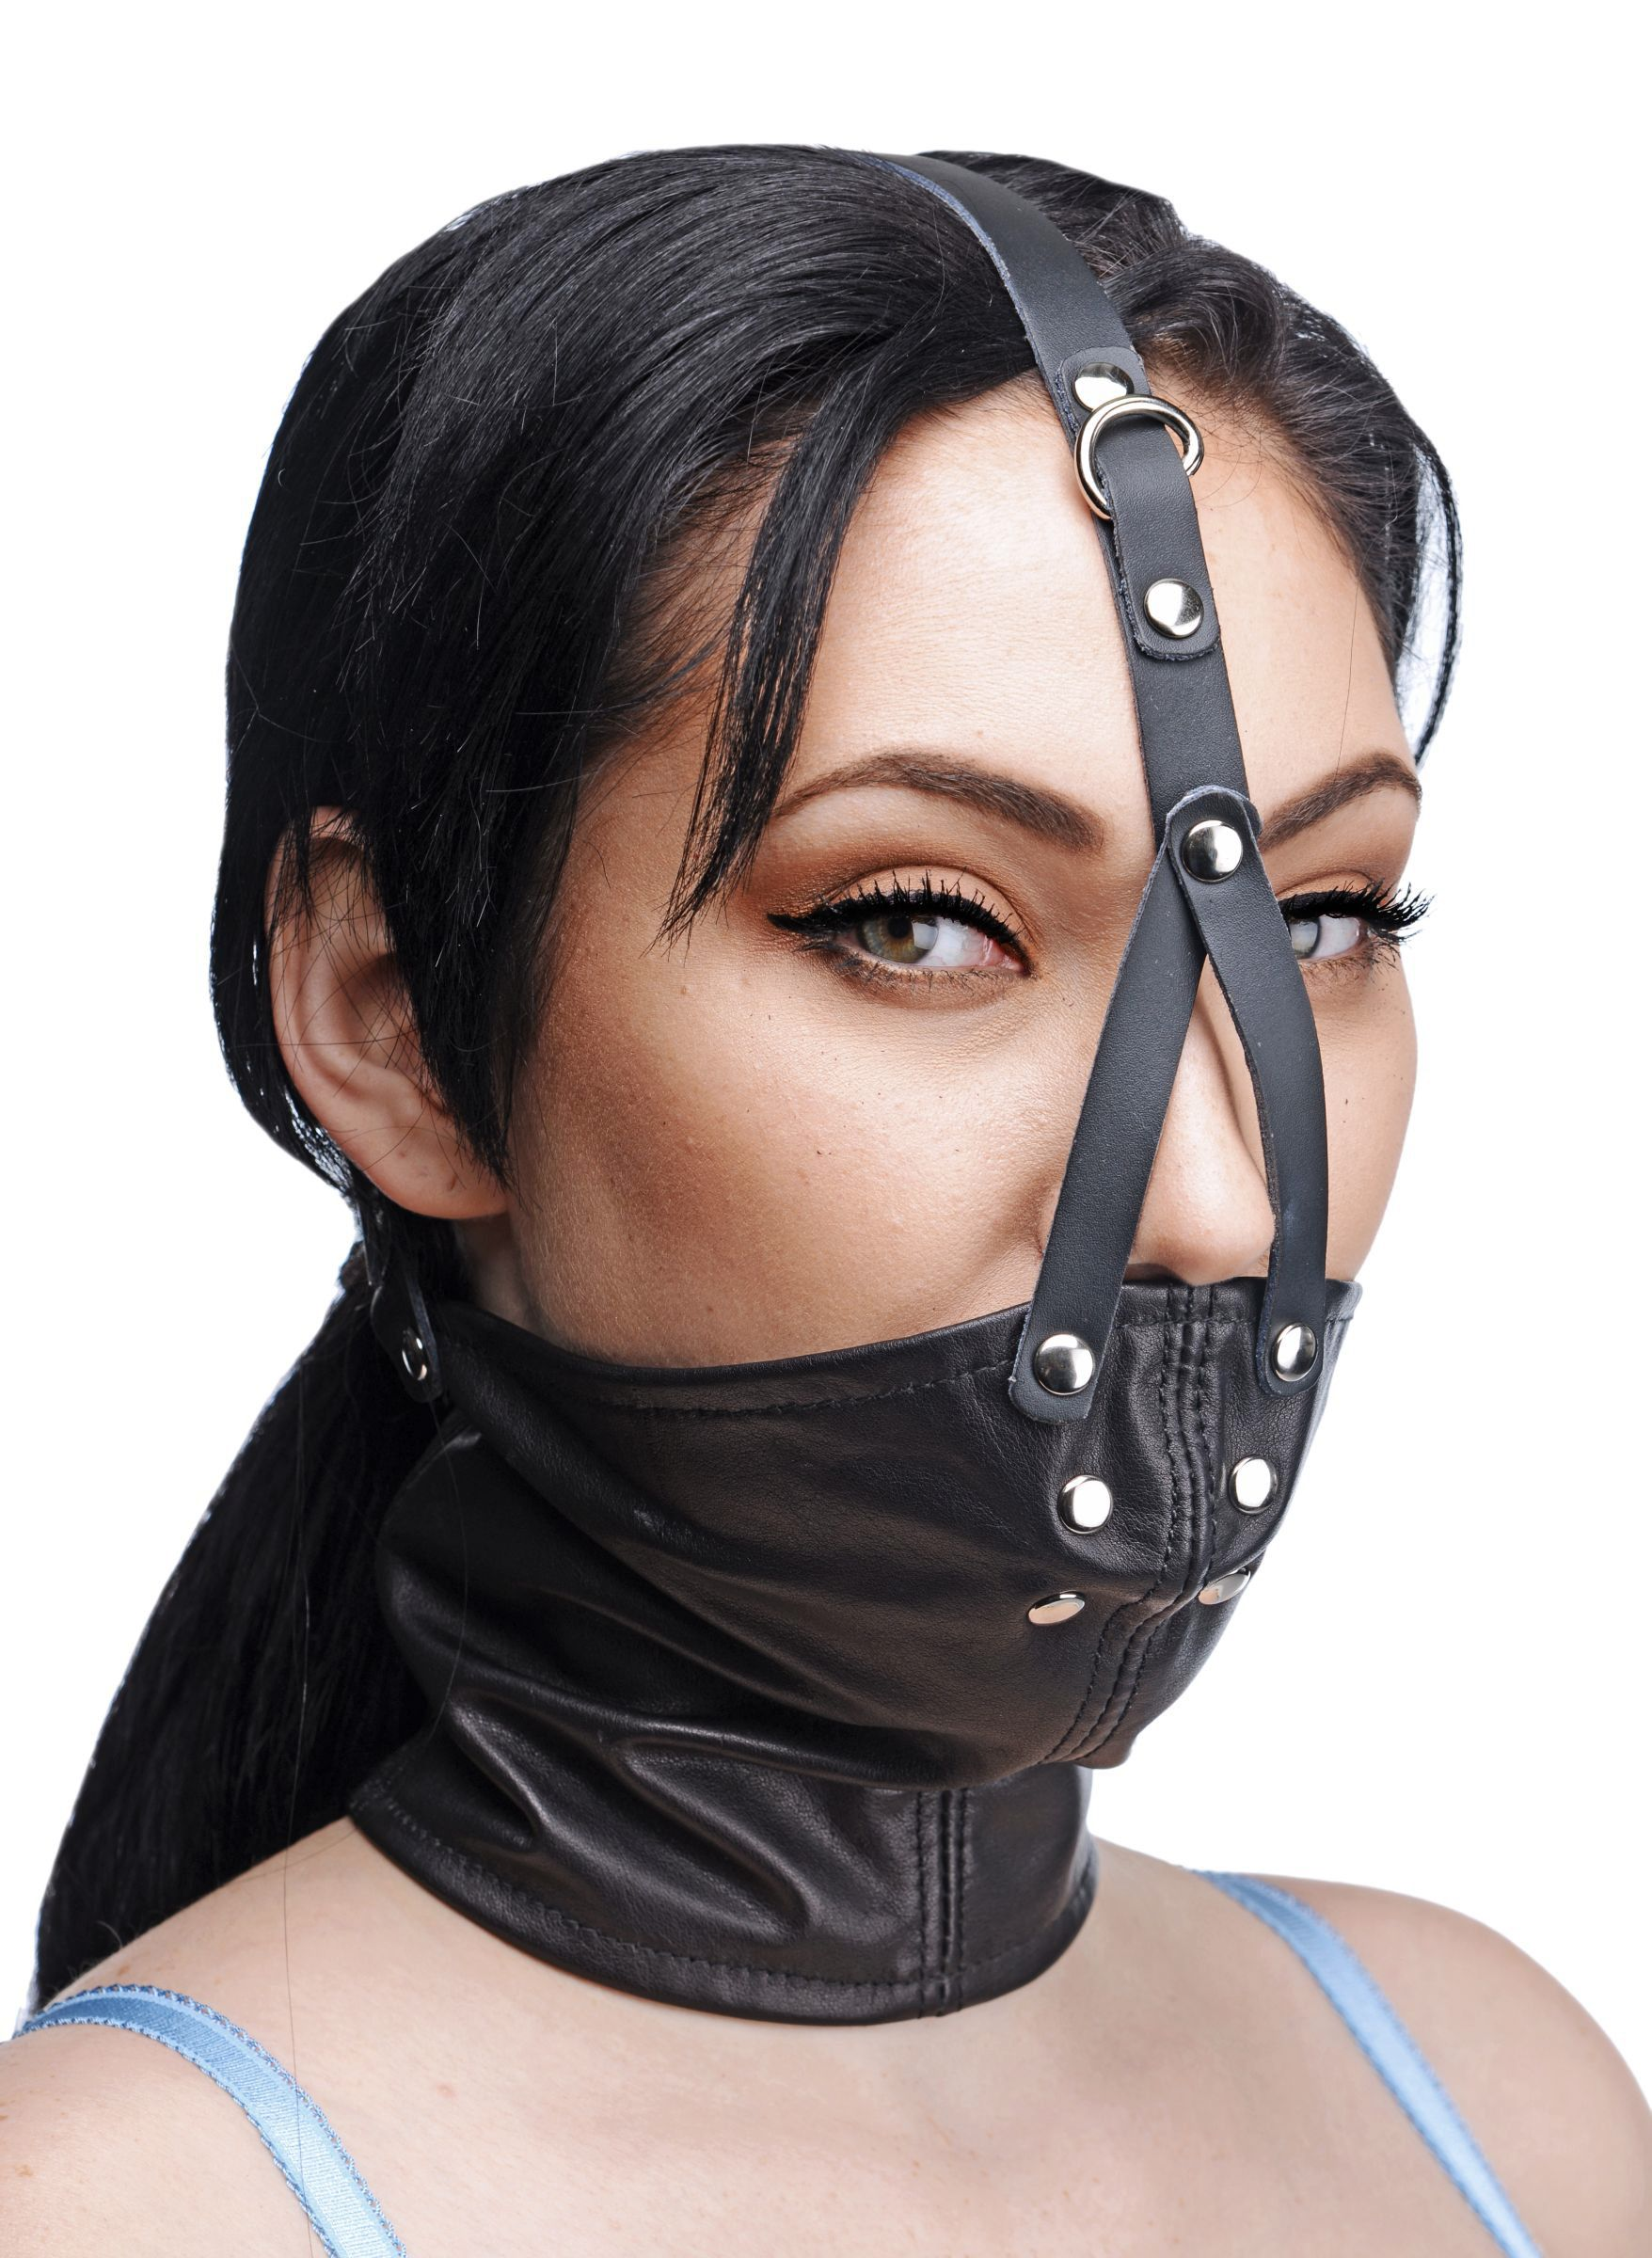 f682792961 Master Series Leather Neck Corset Harness Stuffer Gag - The Master Series Leather  Neck Corset Harness Stuffer Gag is designed to fit most neck sizes and is  ...